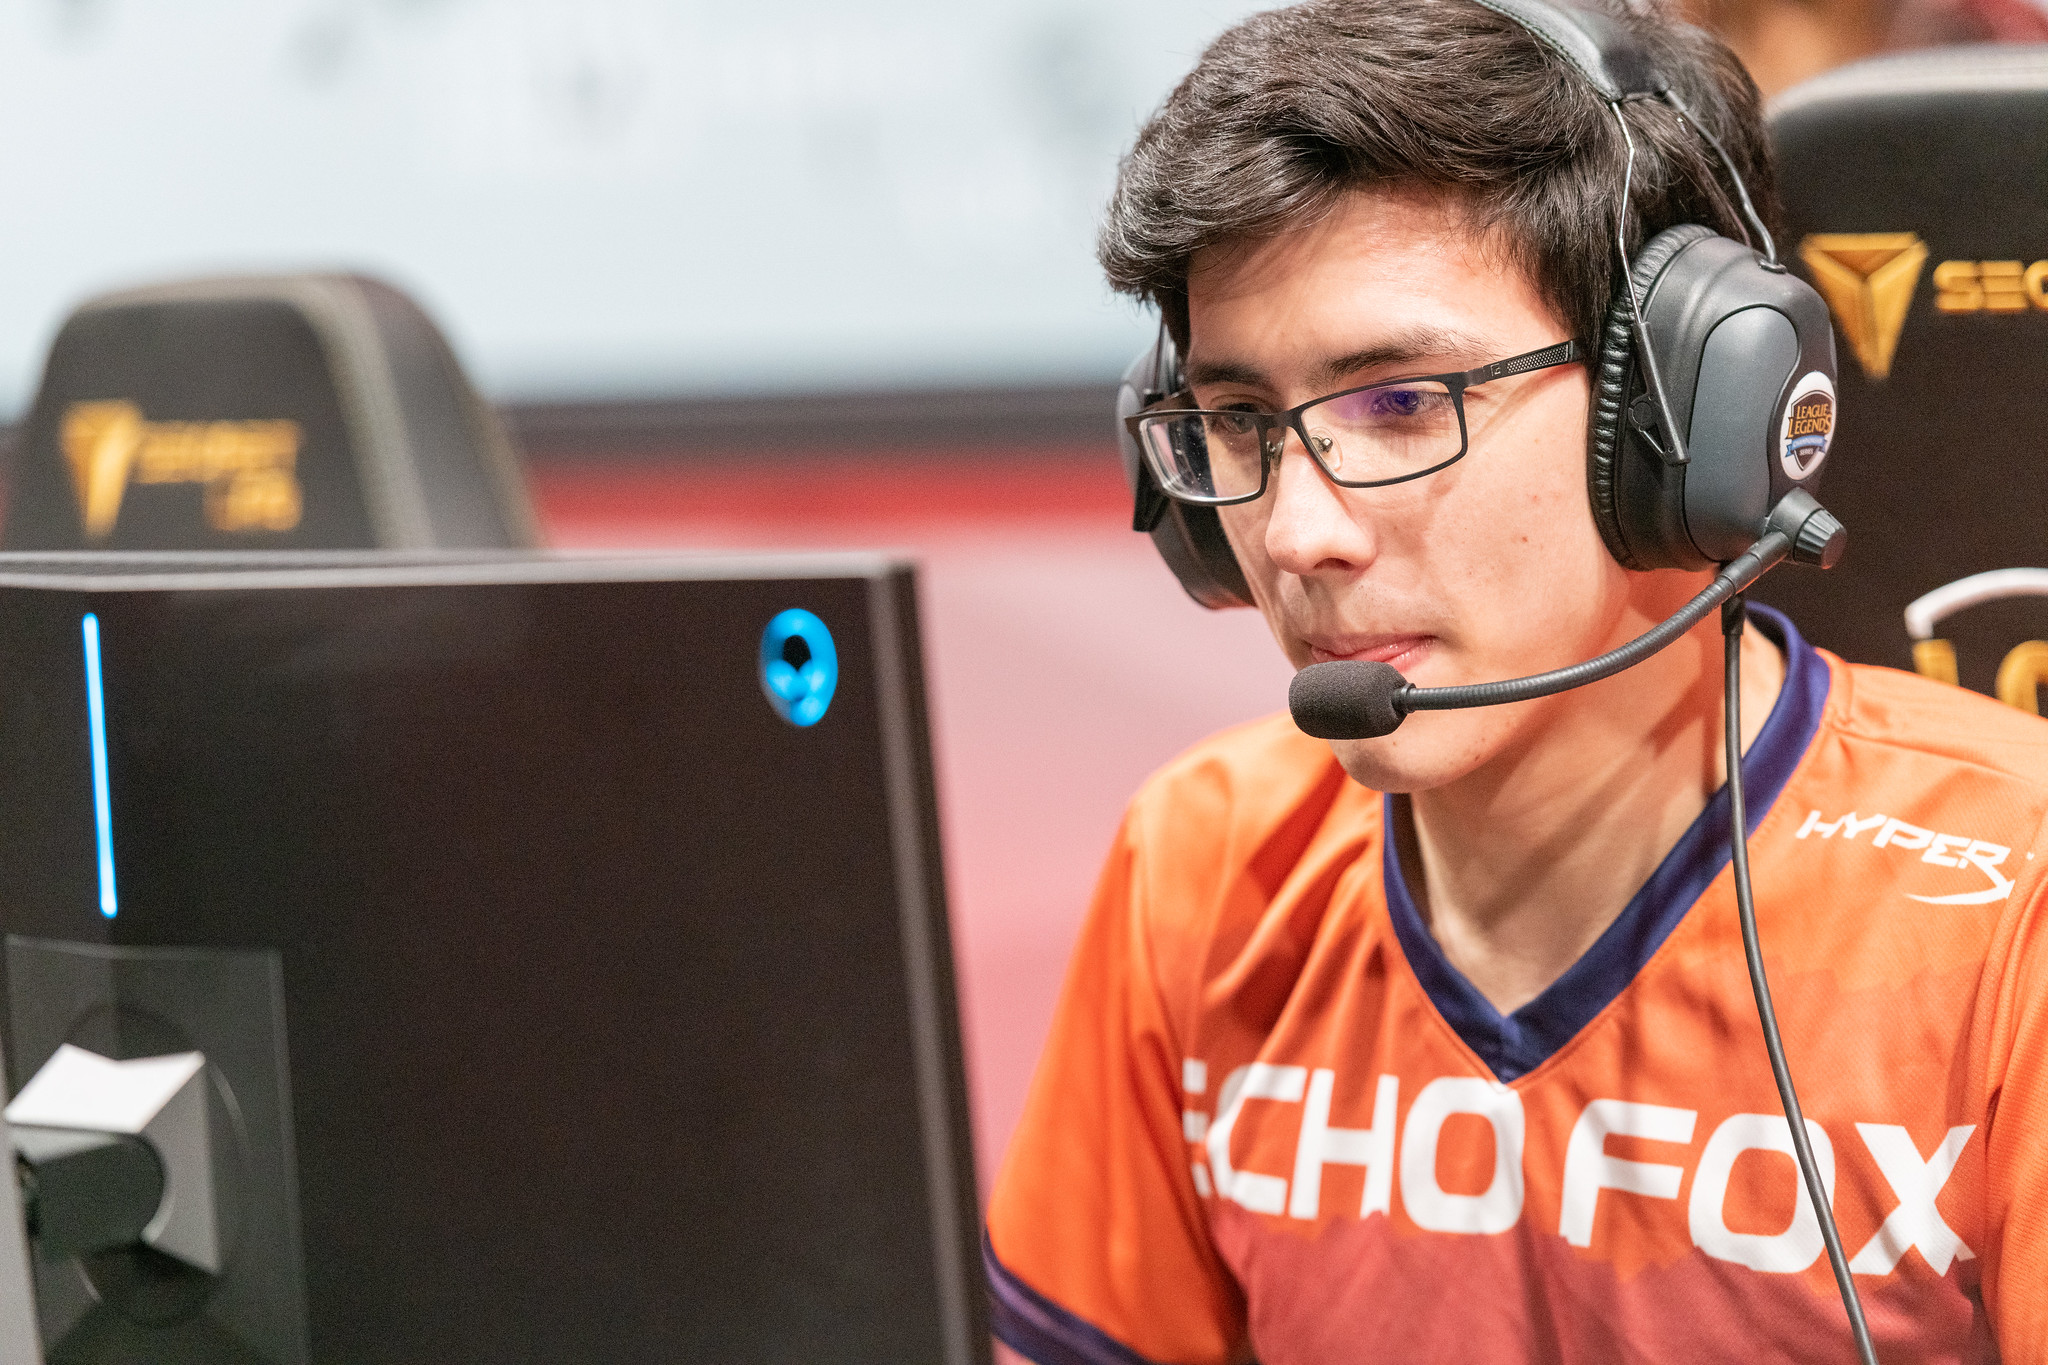 An Echo Fox player competing in what will be one of the organization's final regular season LCS matches